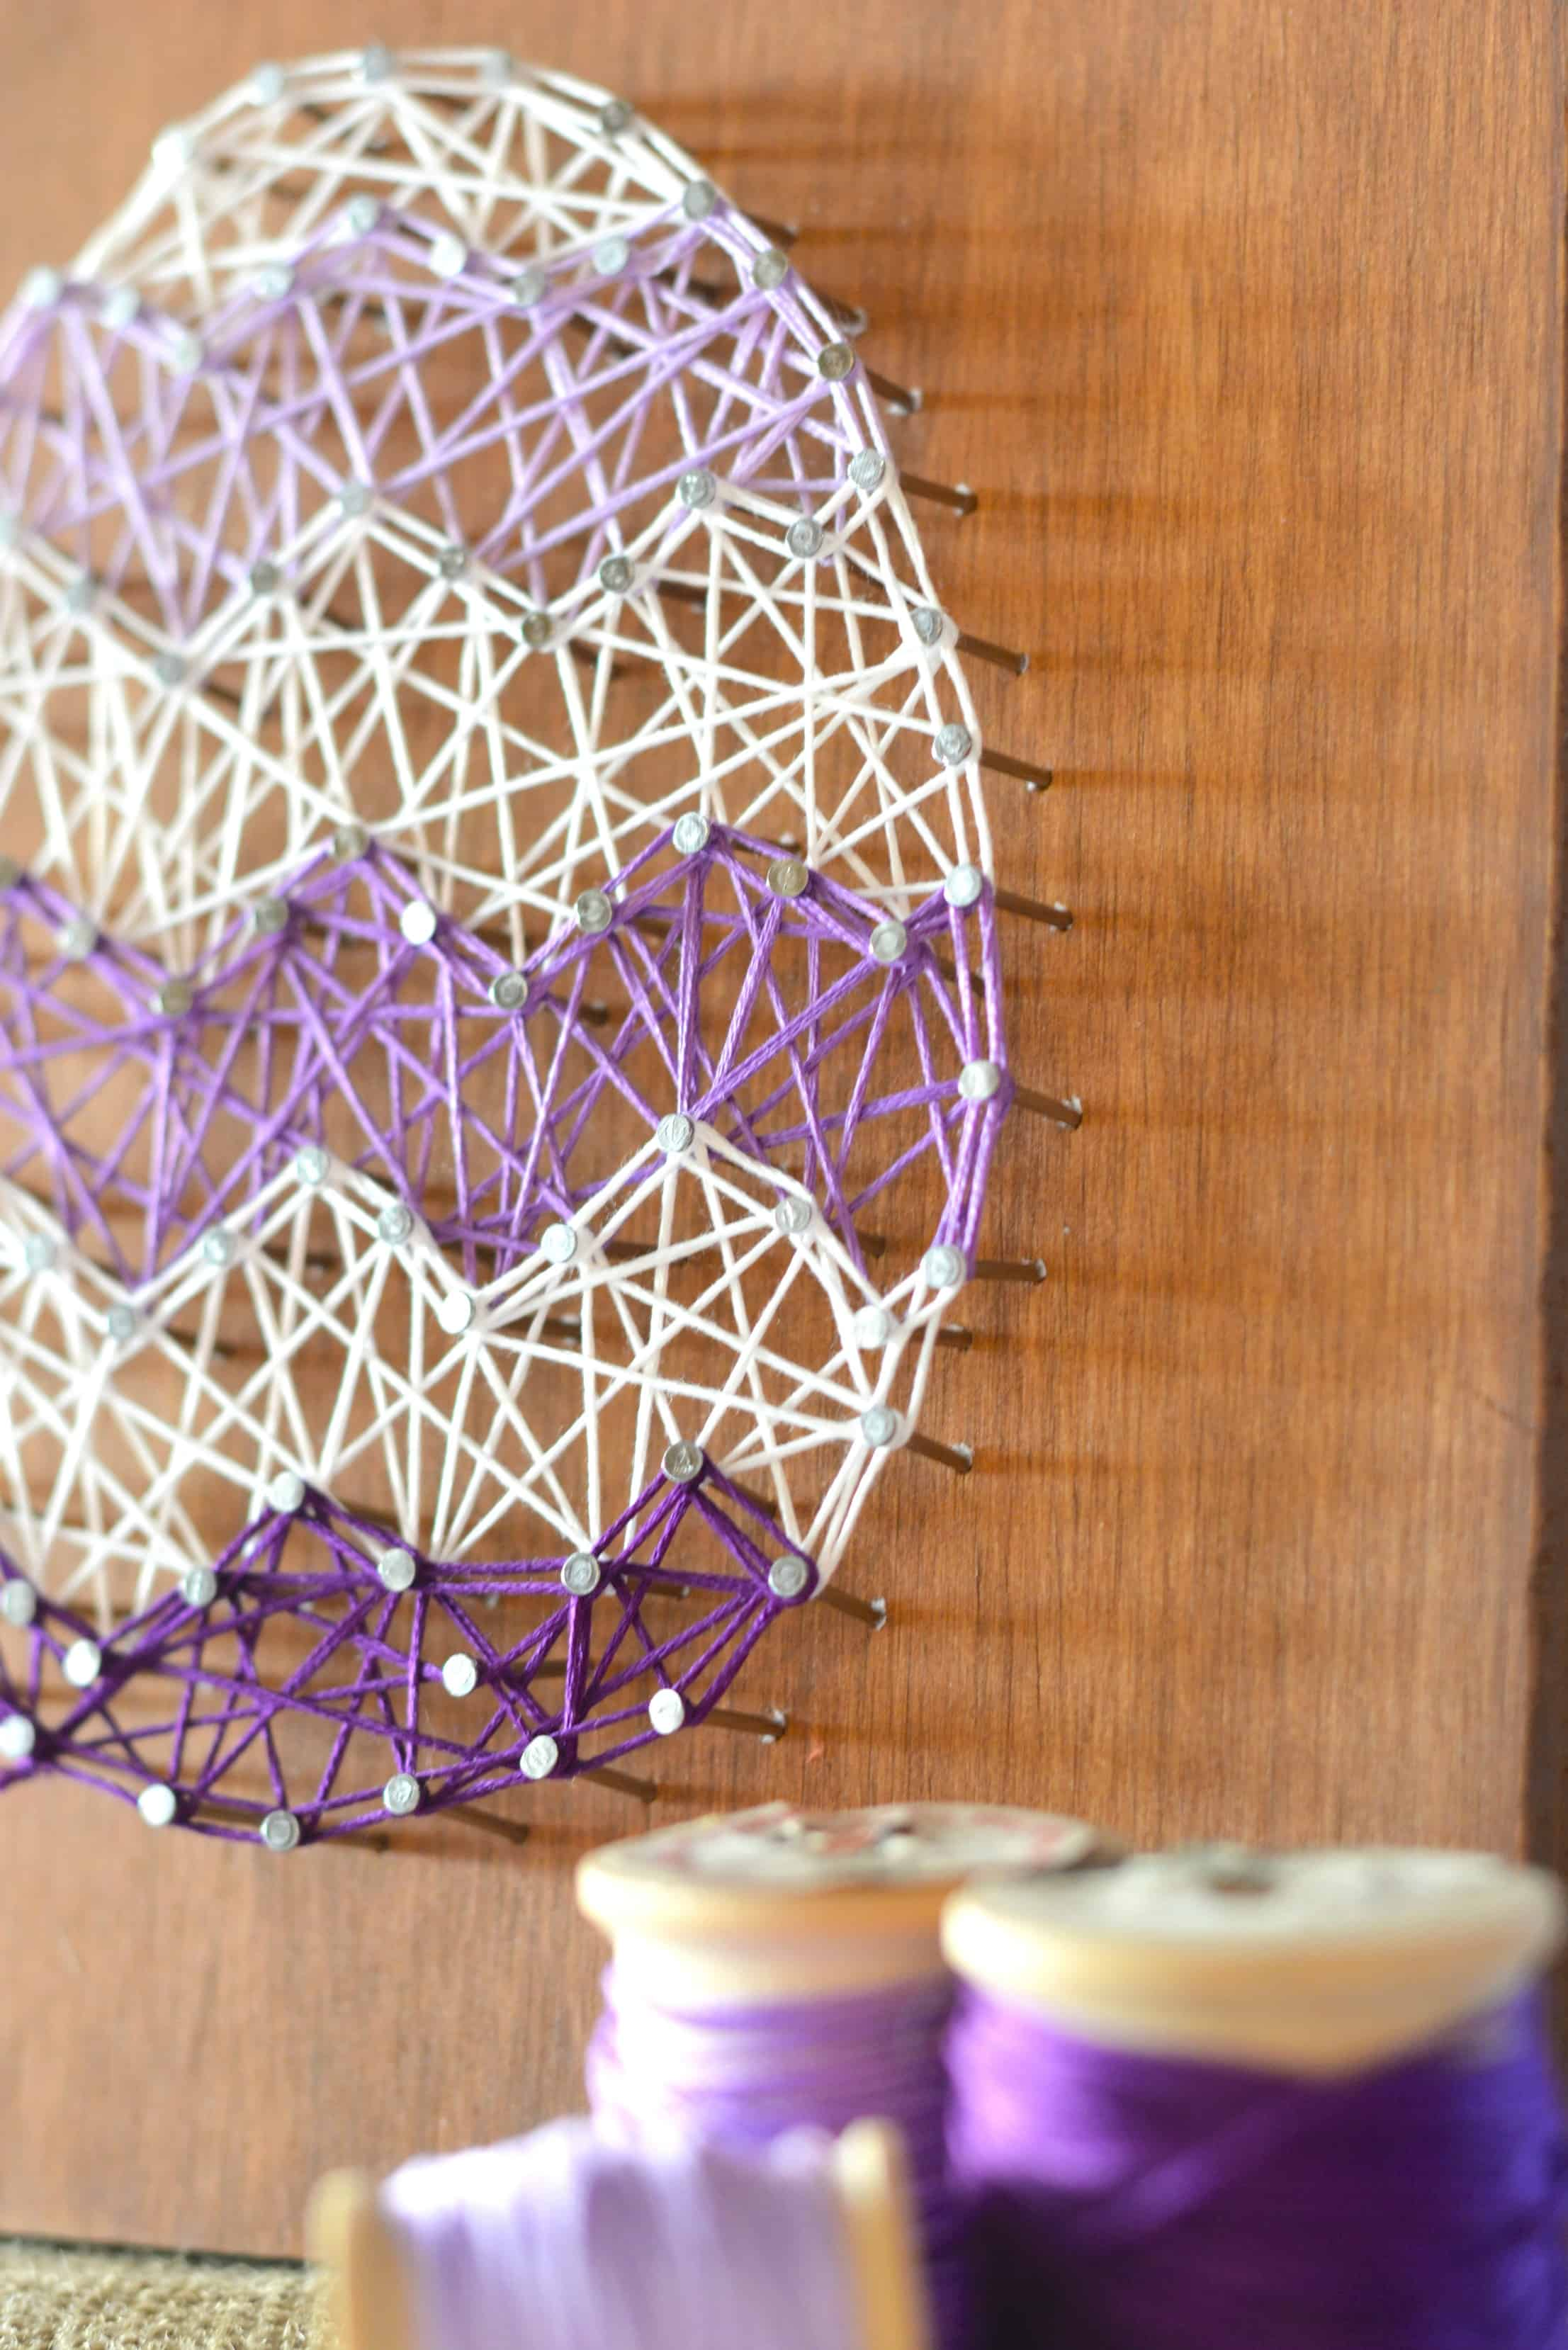 Attractive Crafts Style Home Decorating Ideas Arts Diy Easter Egg String Art Home Decor Craft Arts Crafts Home Decorations home decor Arts And Crafts Home Decor